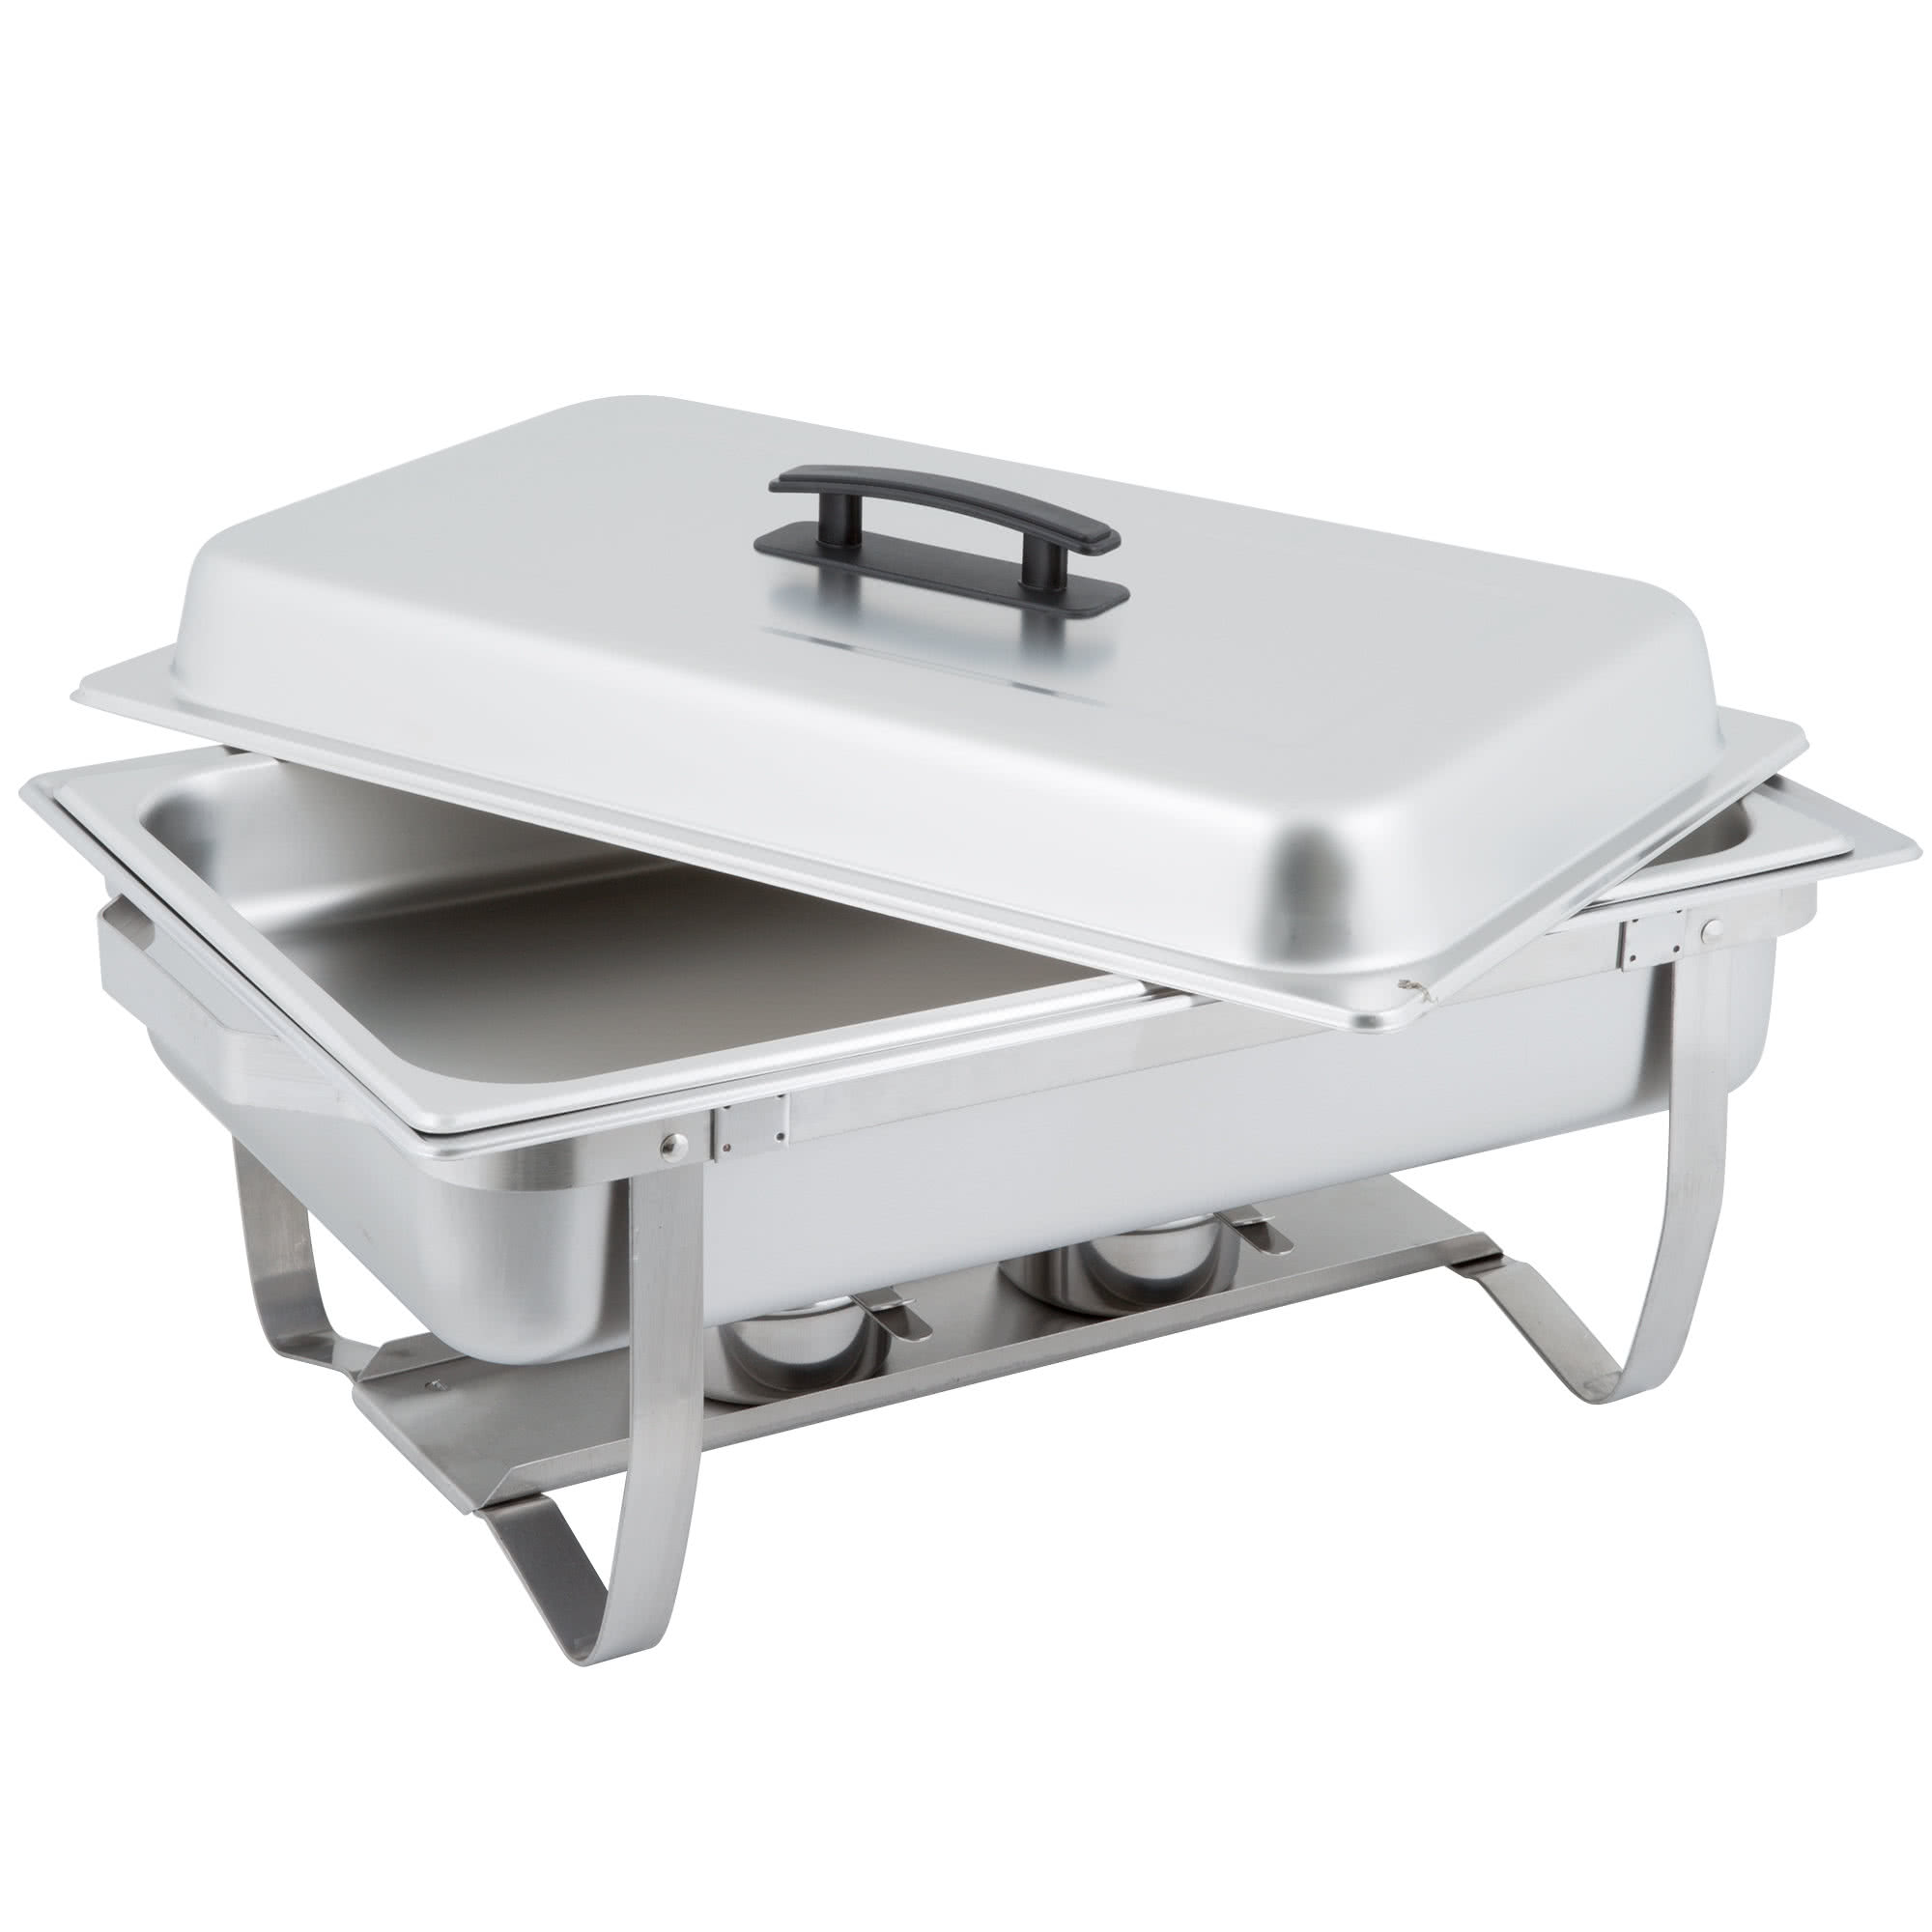 8QT Chafing Pan / Food Warmer